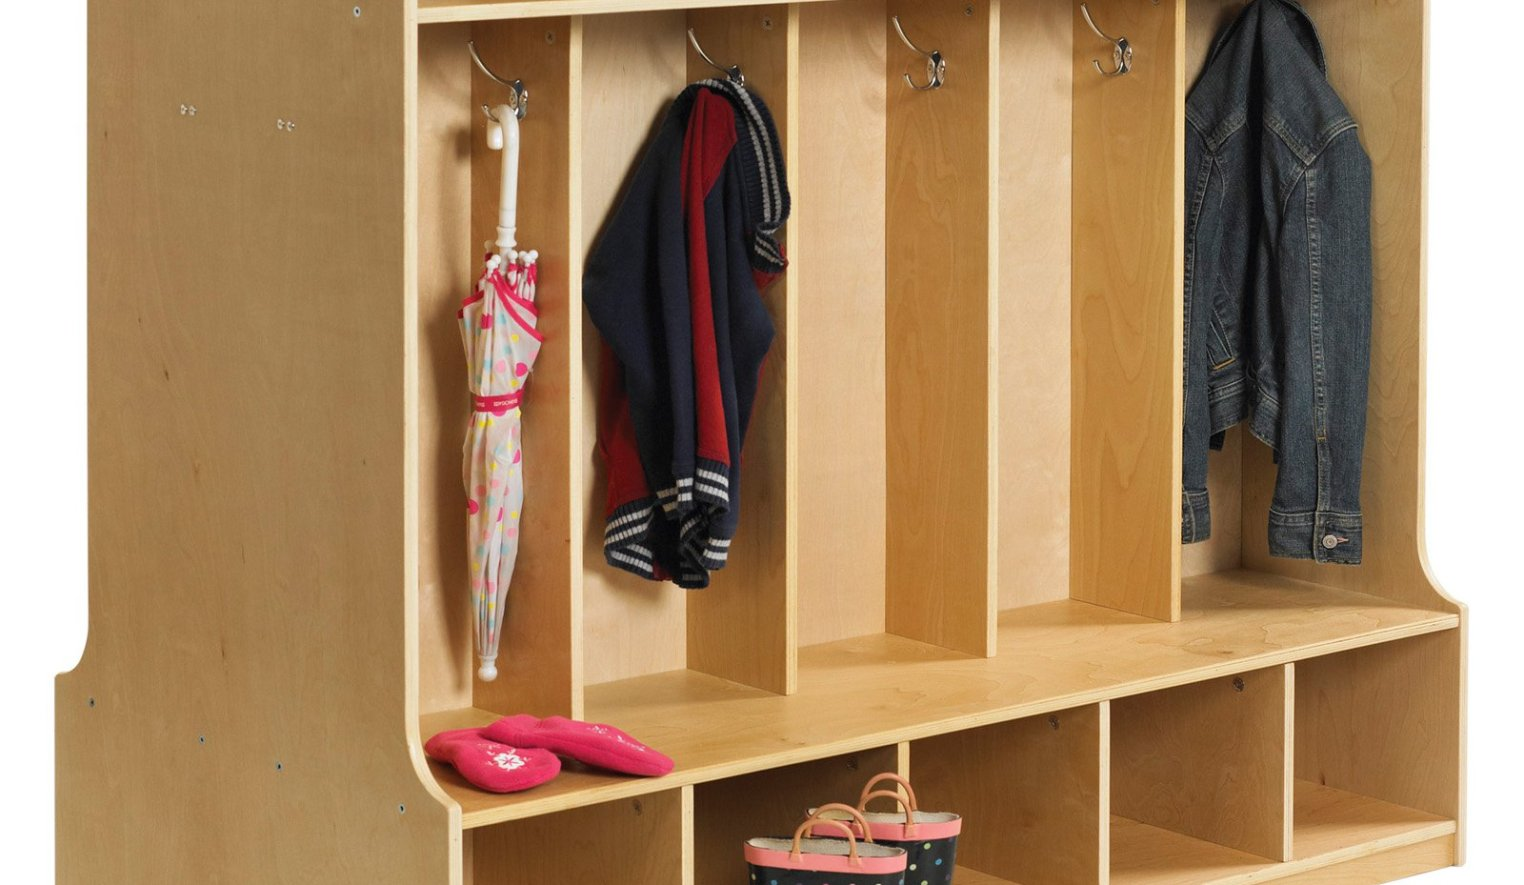 Entryway Storage Bench with Coat Rack | Bench with Shoe Storage and Coat Rack | Entryway Storage Bench and Coat Rack